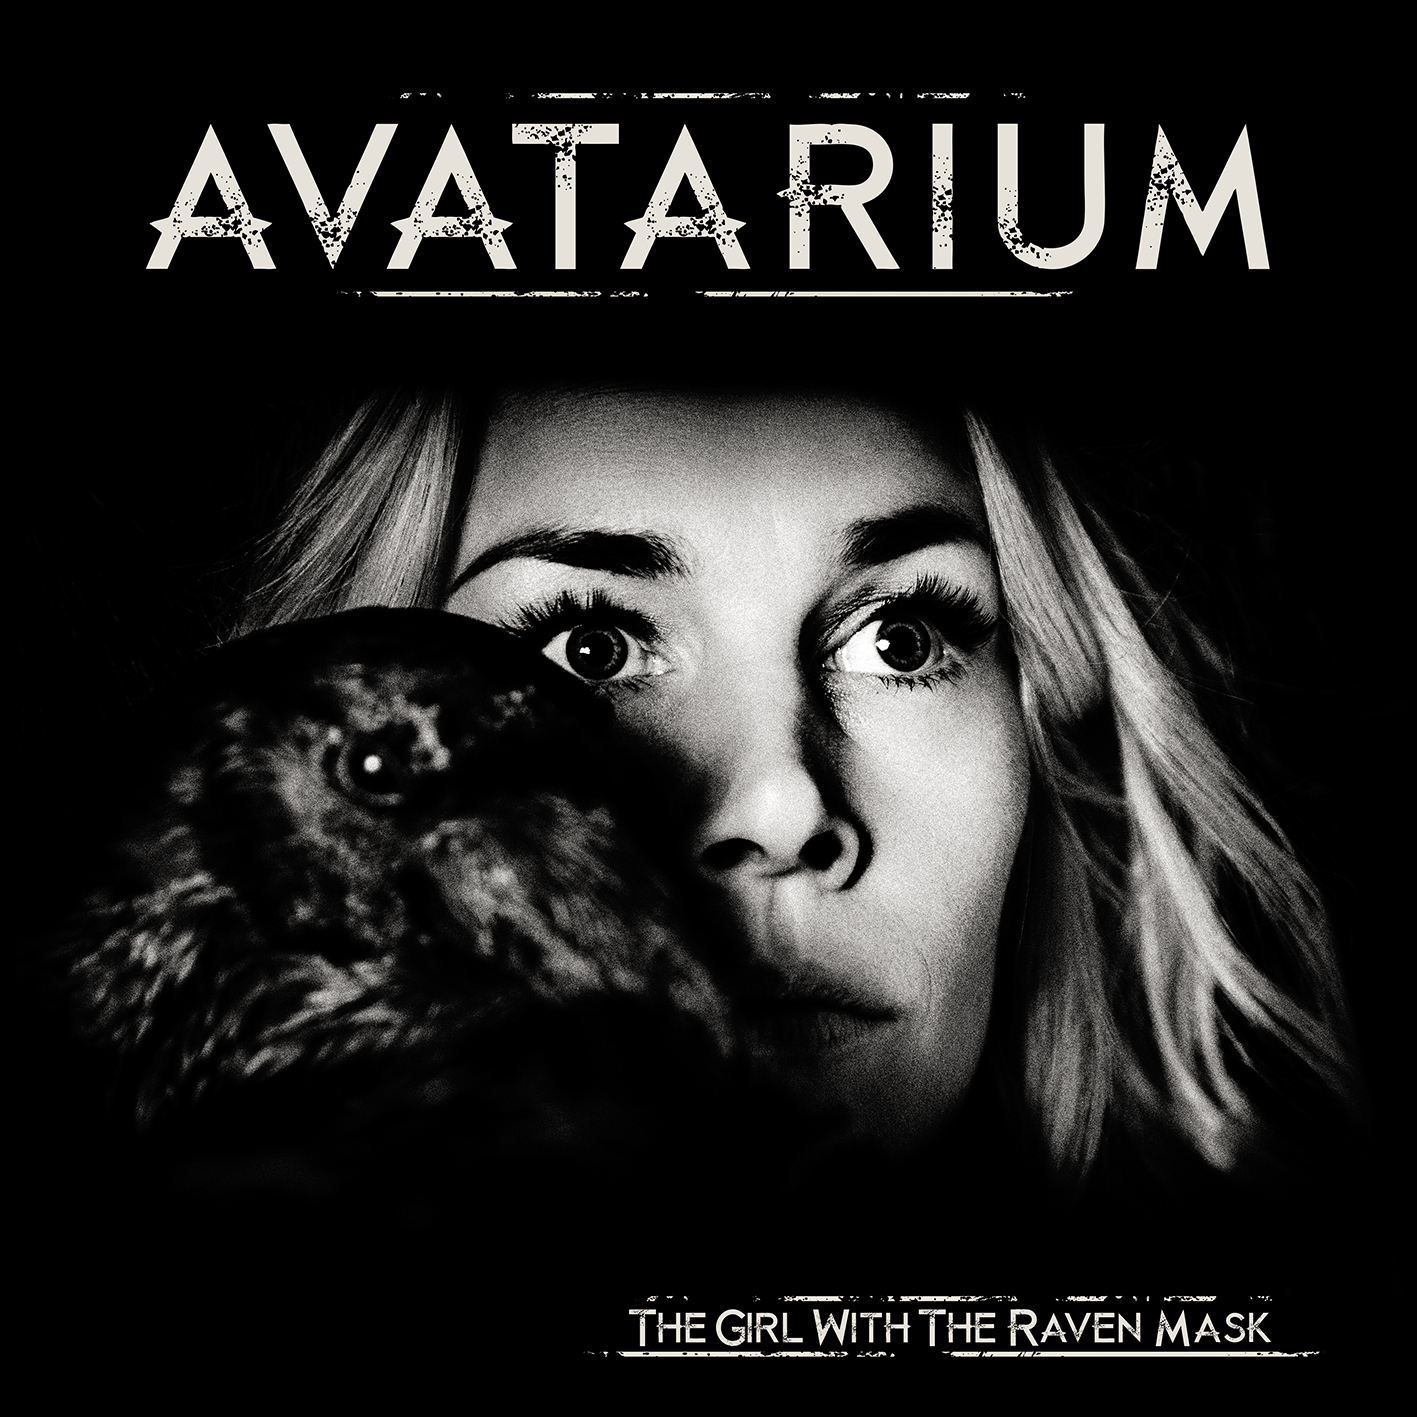 Avatarium – The Girl With the Raven Mask Review